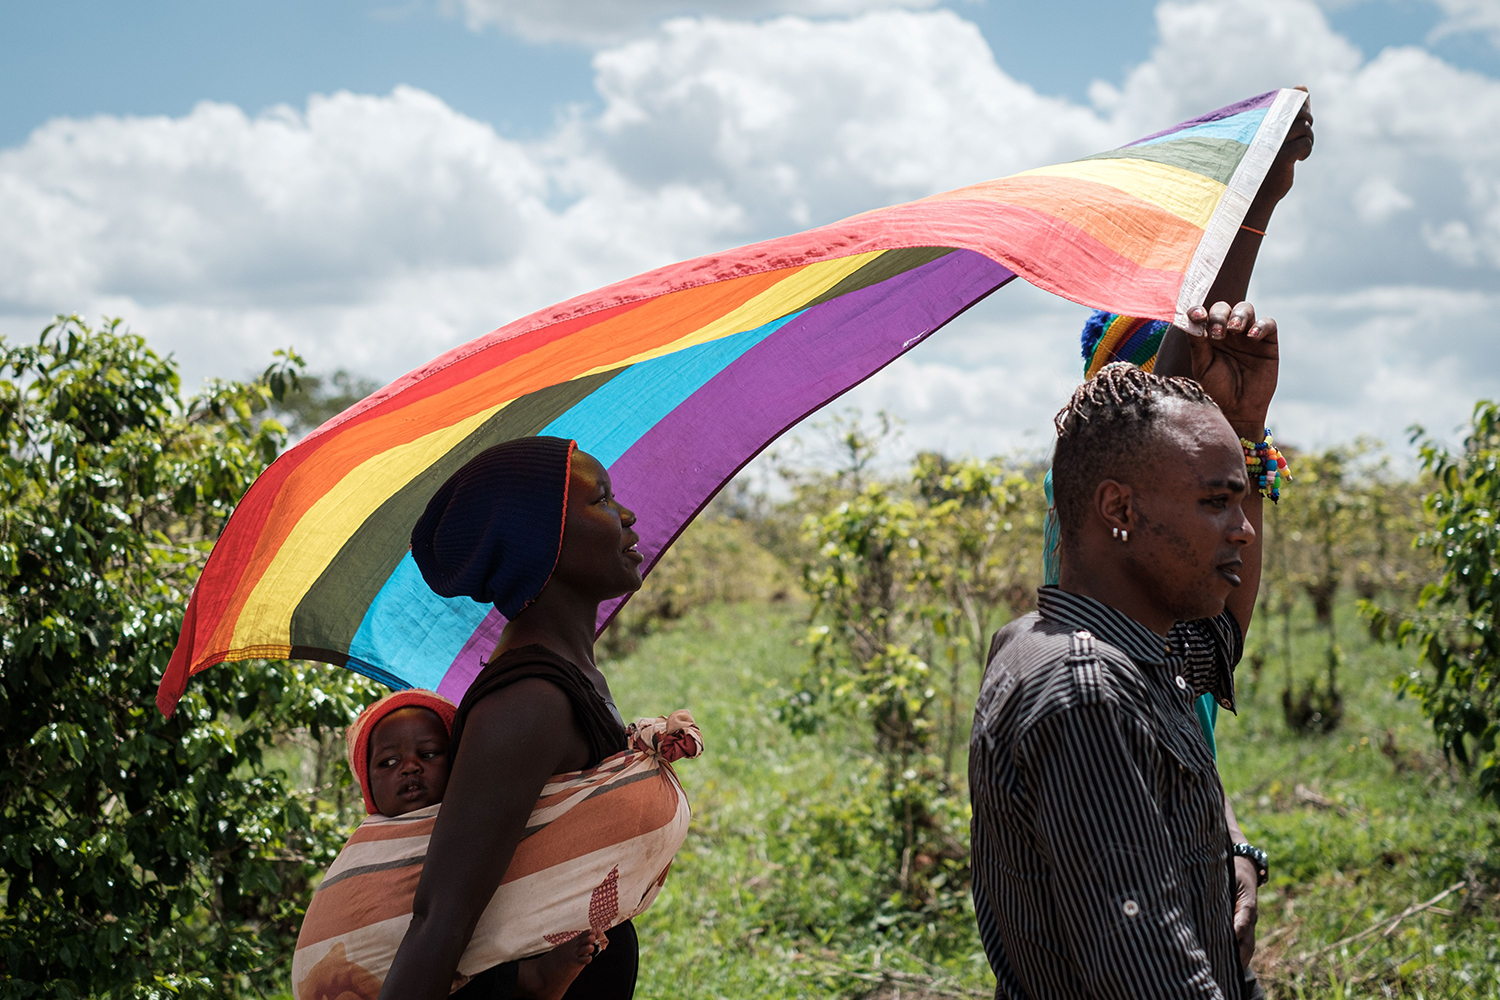 KENYA | LGBT refugees from South Sudan, Uganda, and Democratic Republic of the Congo walk to a protest to demand their protection at the office of the United Nations High Commissioner for Refugees in Nairobi on May 17. YASUYOSHI CHIBA/AFP via Getty Images